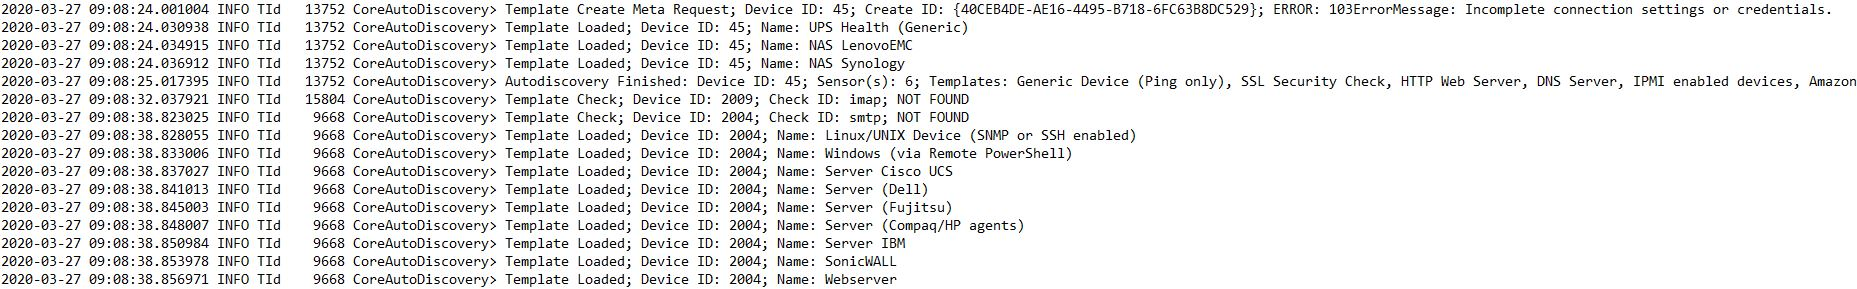 Auto-discovery logfile